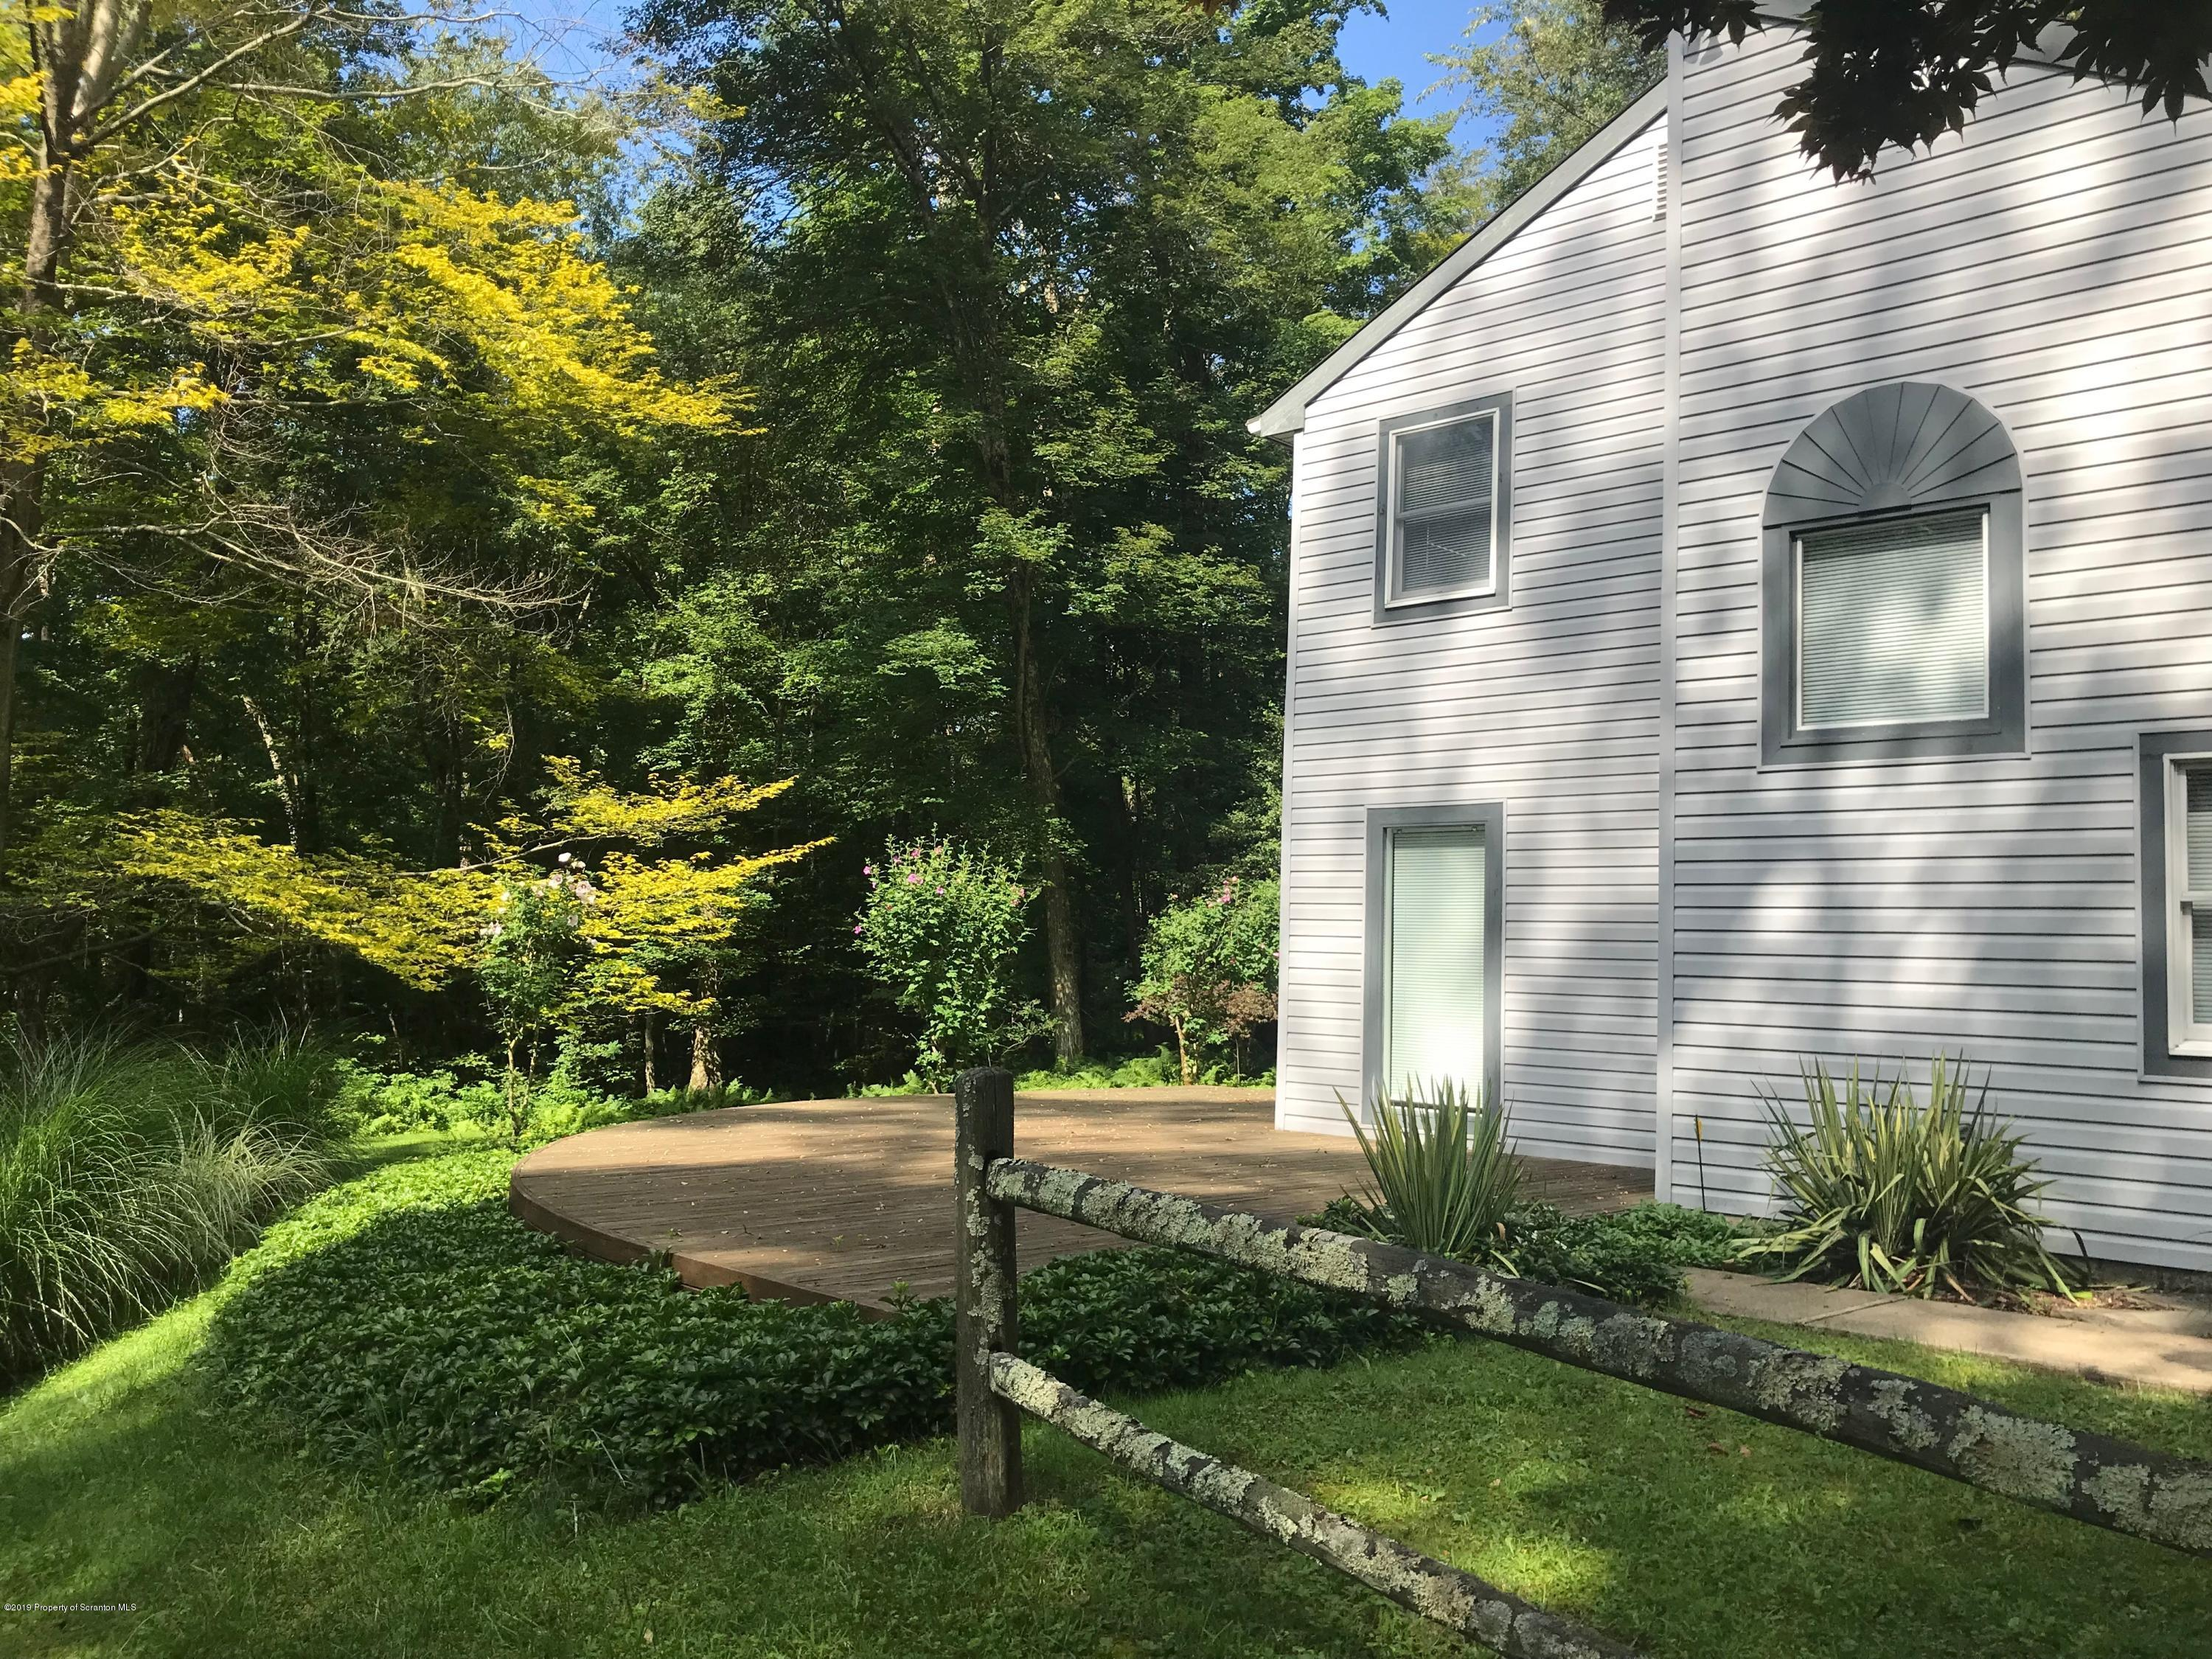 319 Idlewild Ln, Clifford Twp, Pennsylvania 18470, 3 Bedrooms Bedrooms, 7 Rooms Rooms,3 BathroomsBathrooms,Single Family,For Sale,Idlewild,19-3912